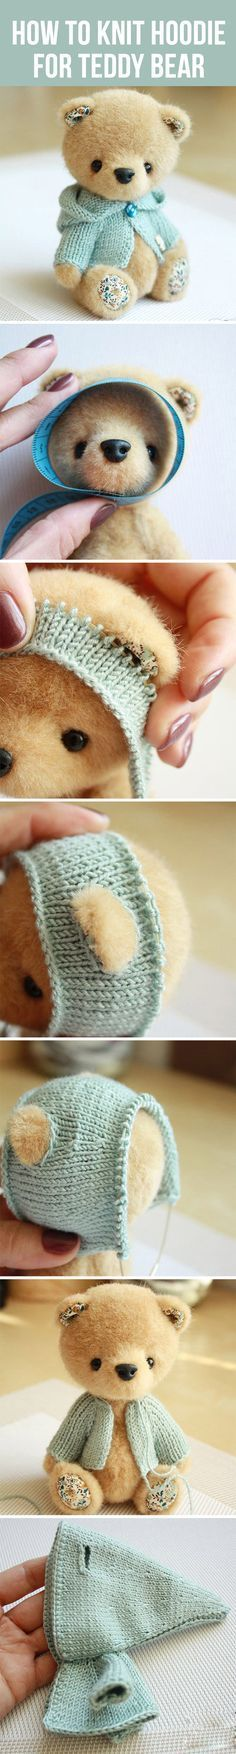 How to knit hoodie for Teddy bear